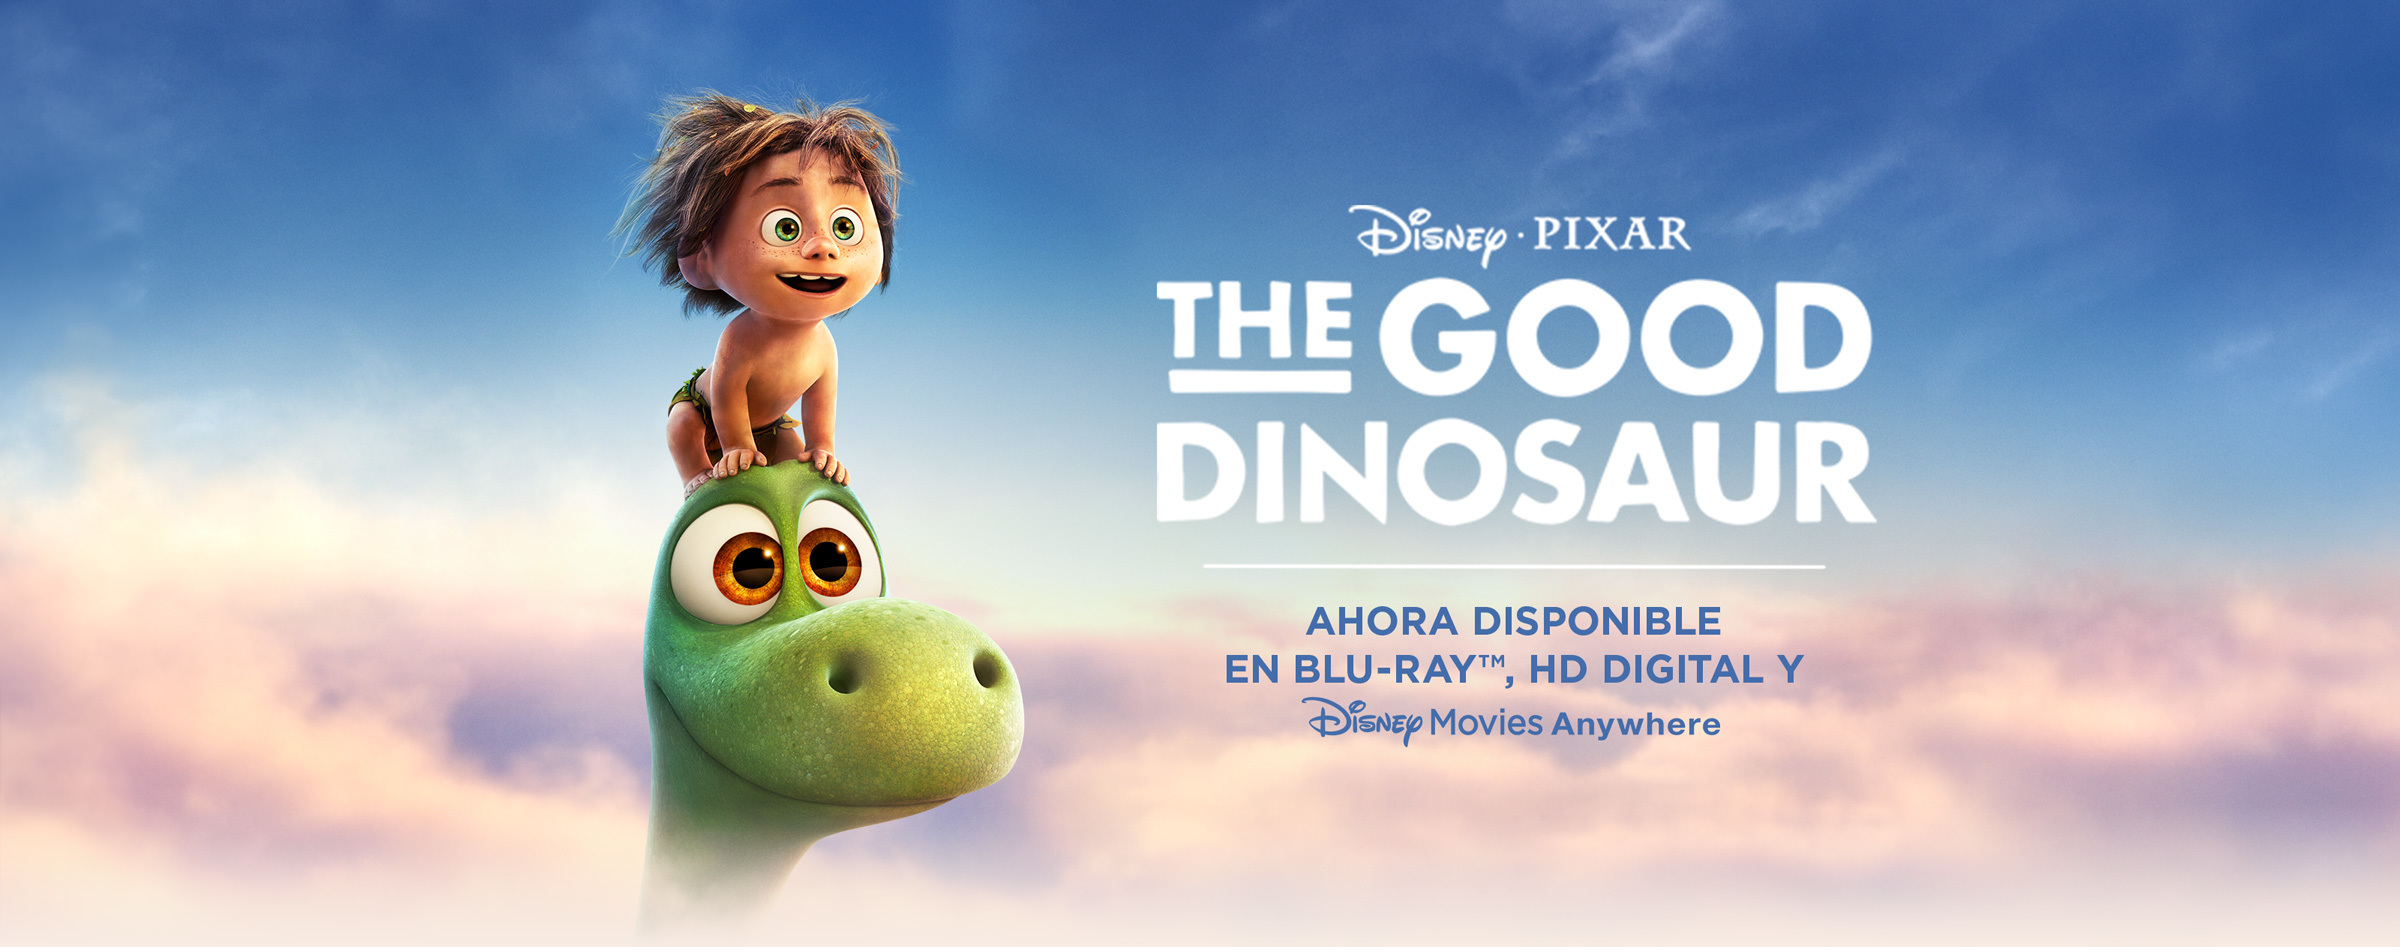 The Good Dinosaur - Flex Hero - Release